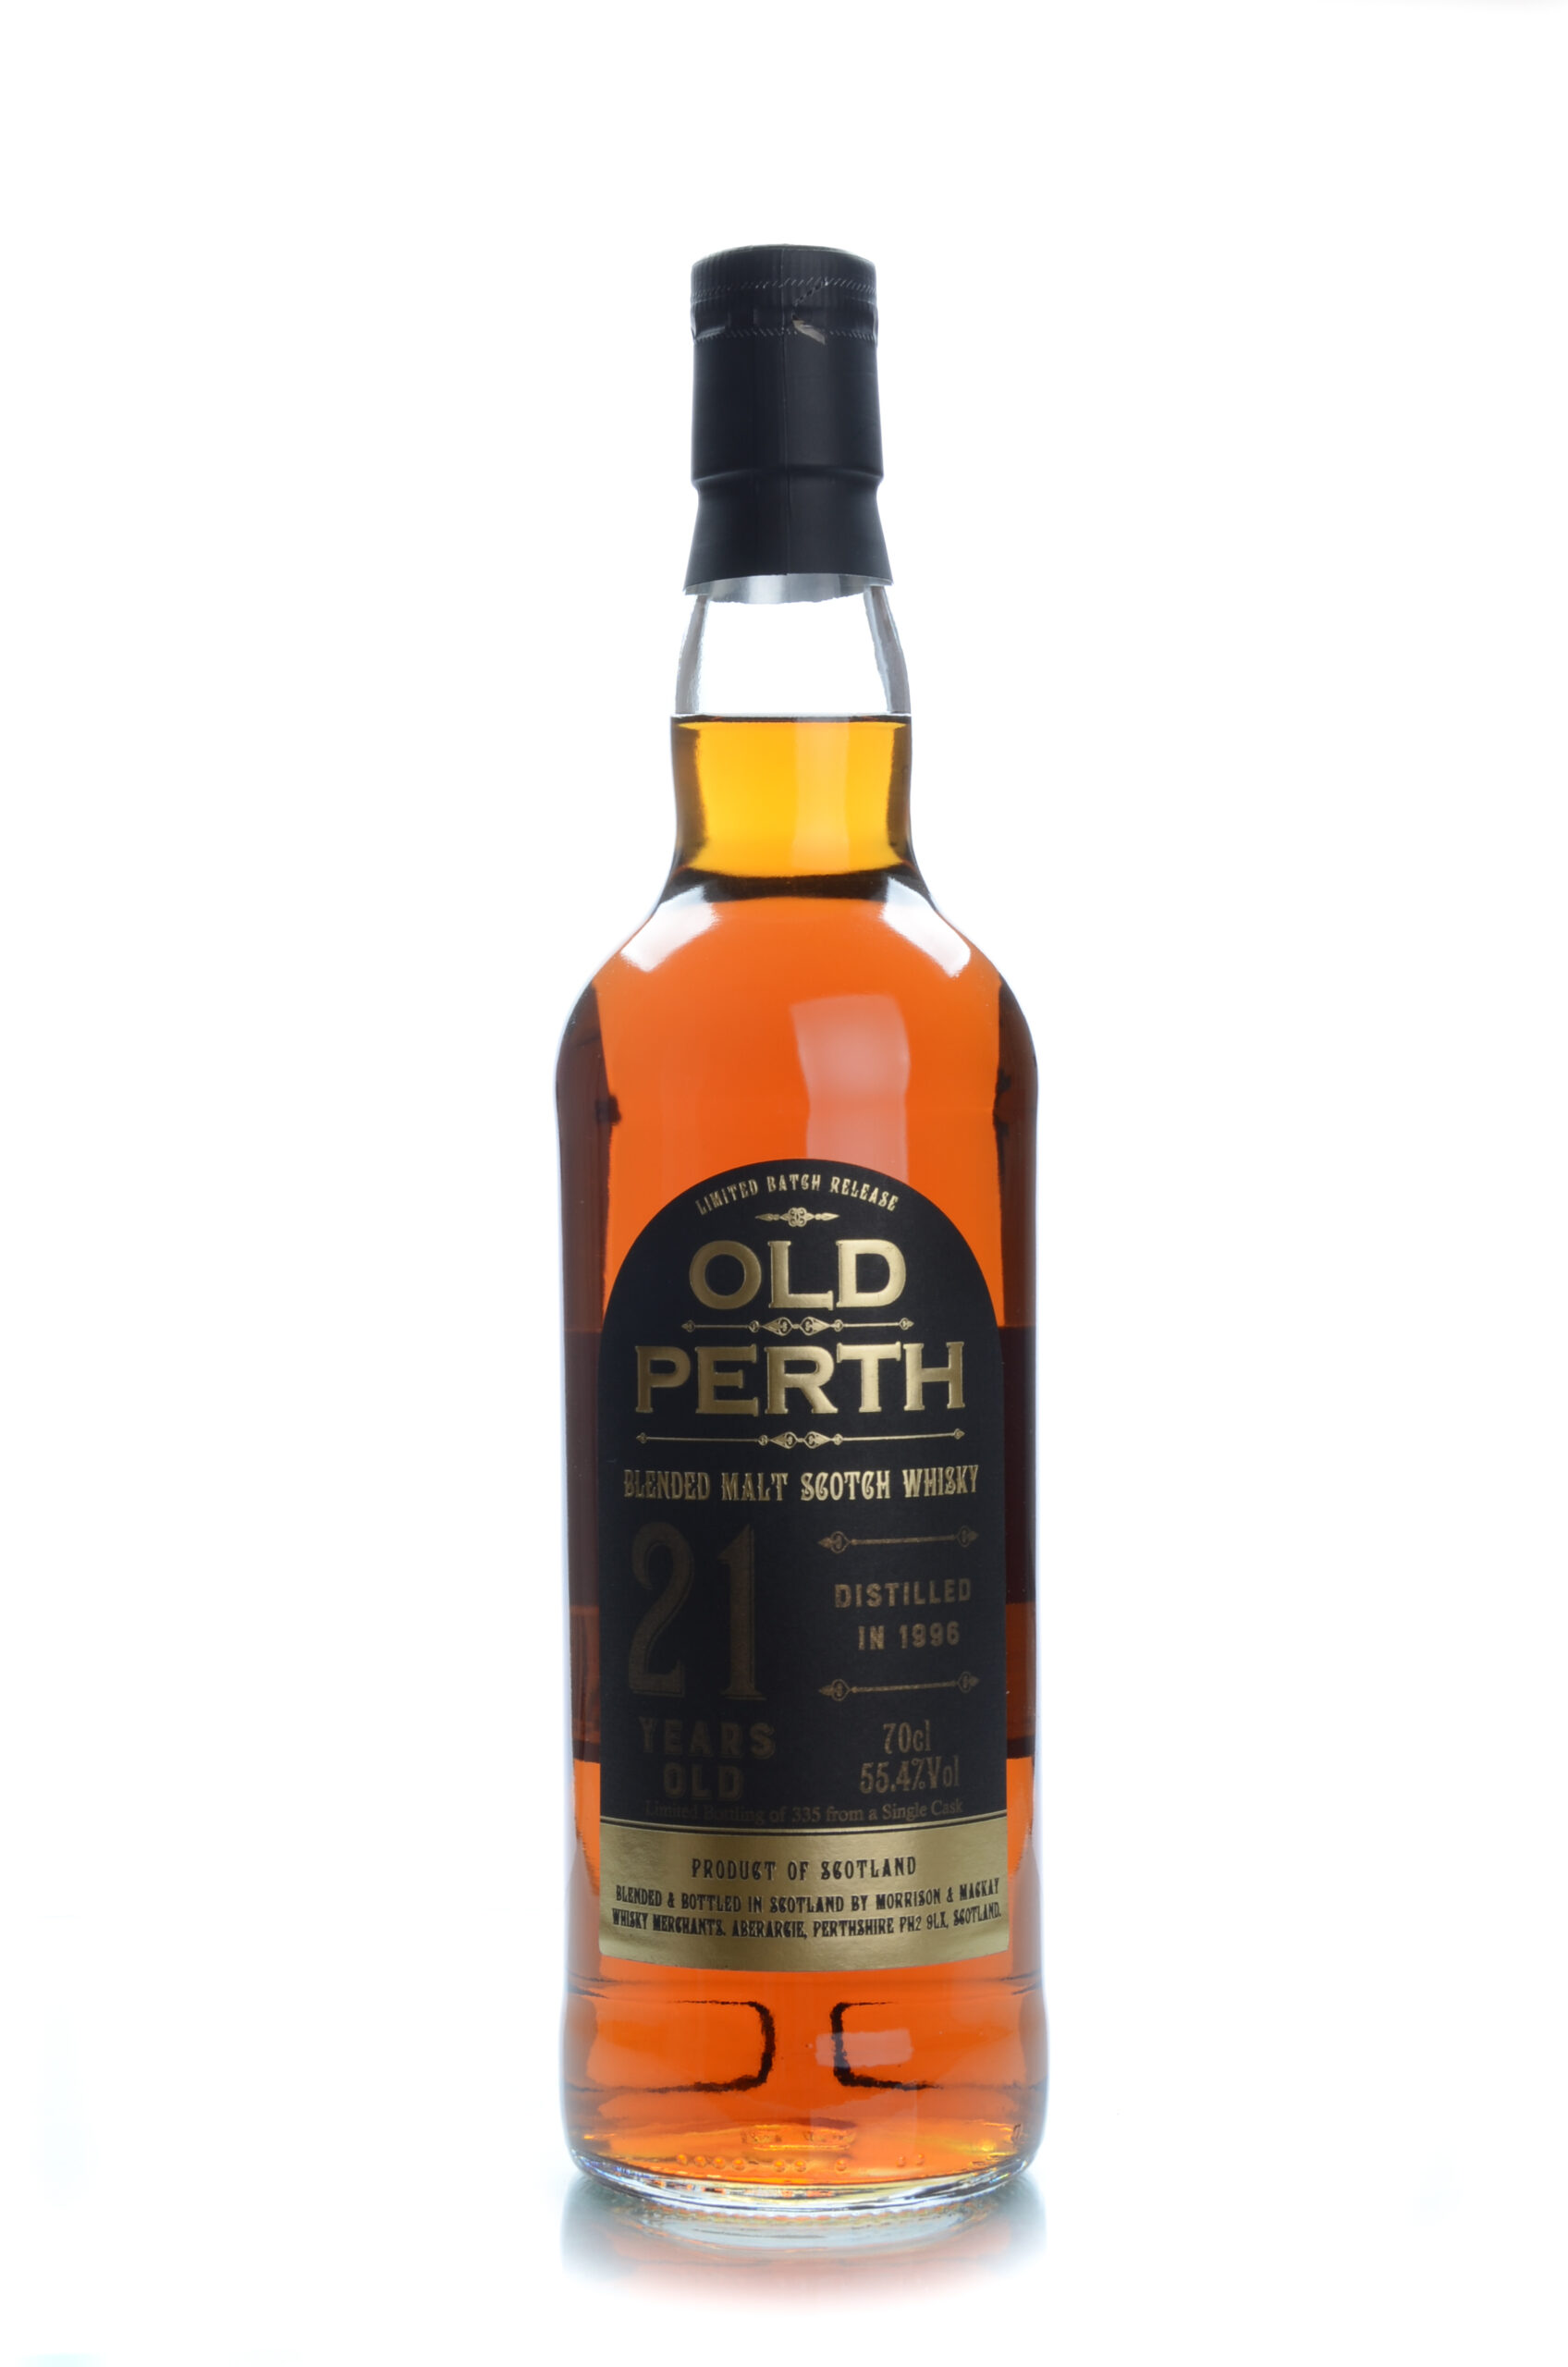 Old Perth 21 years